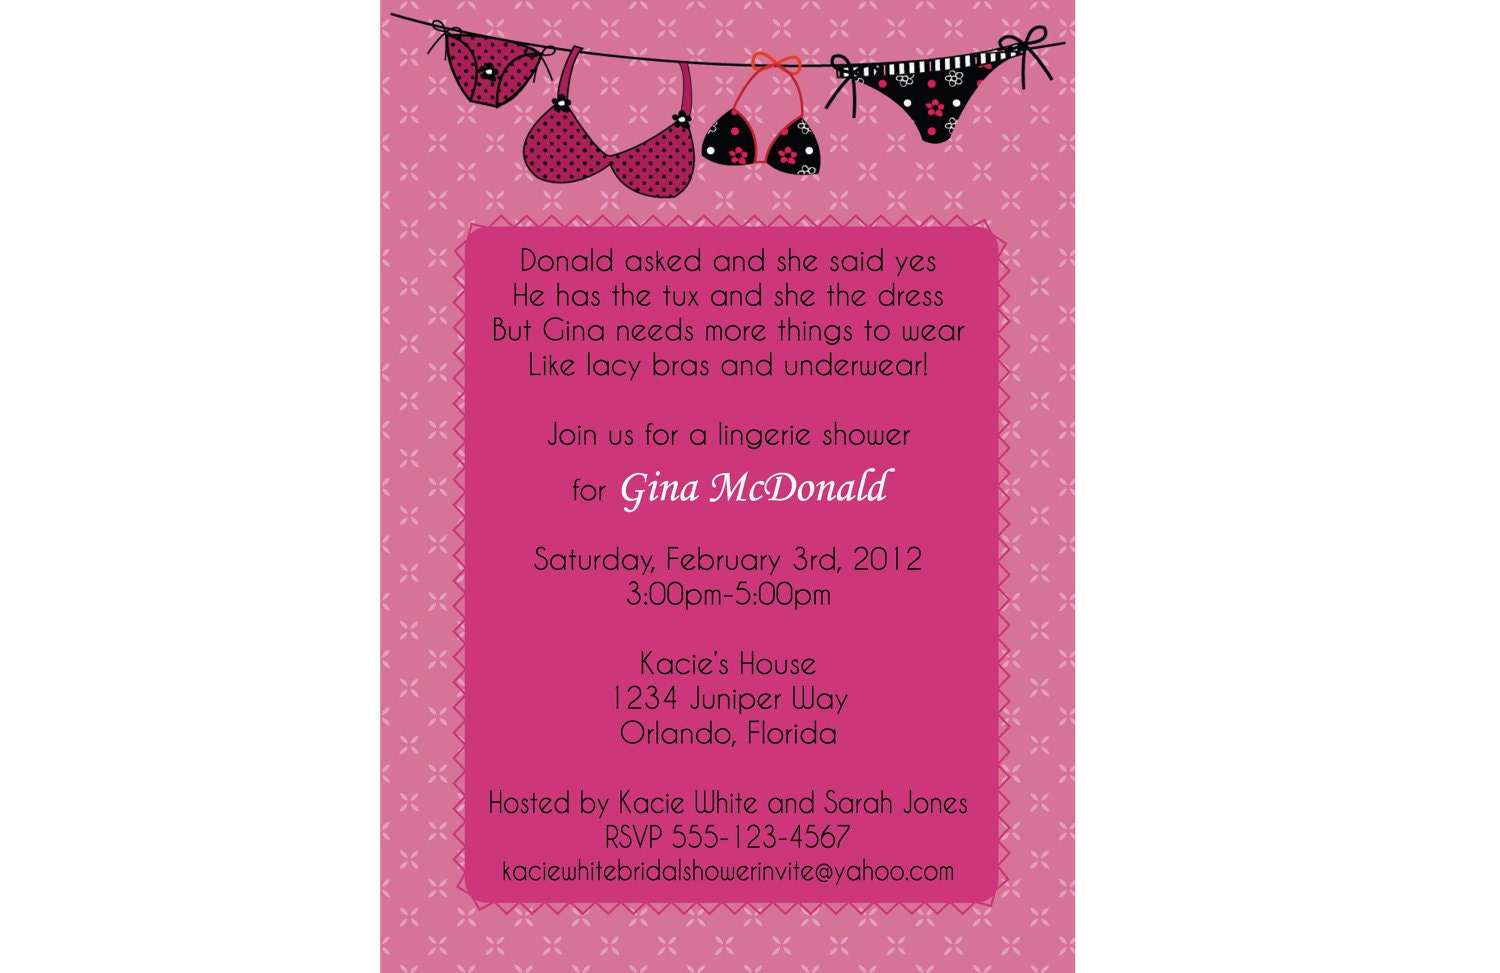 Bridal Lingerie Shower Invitations is best invitation example